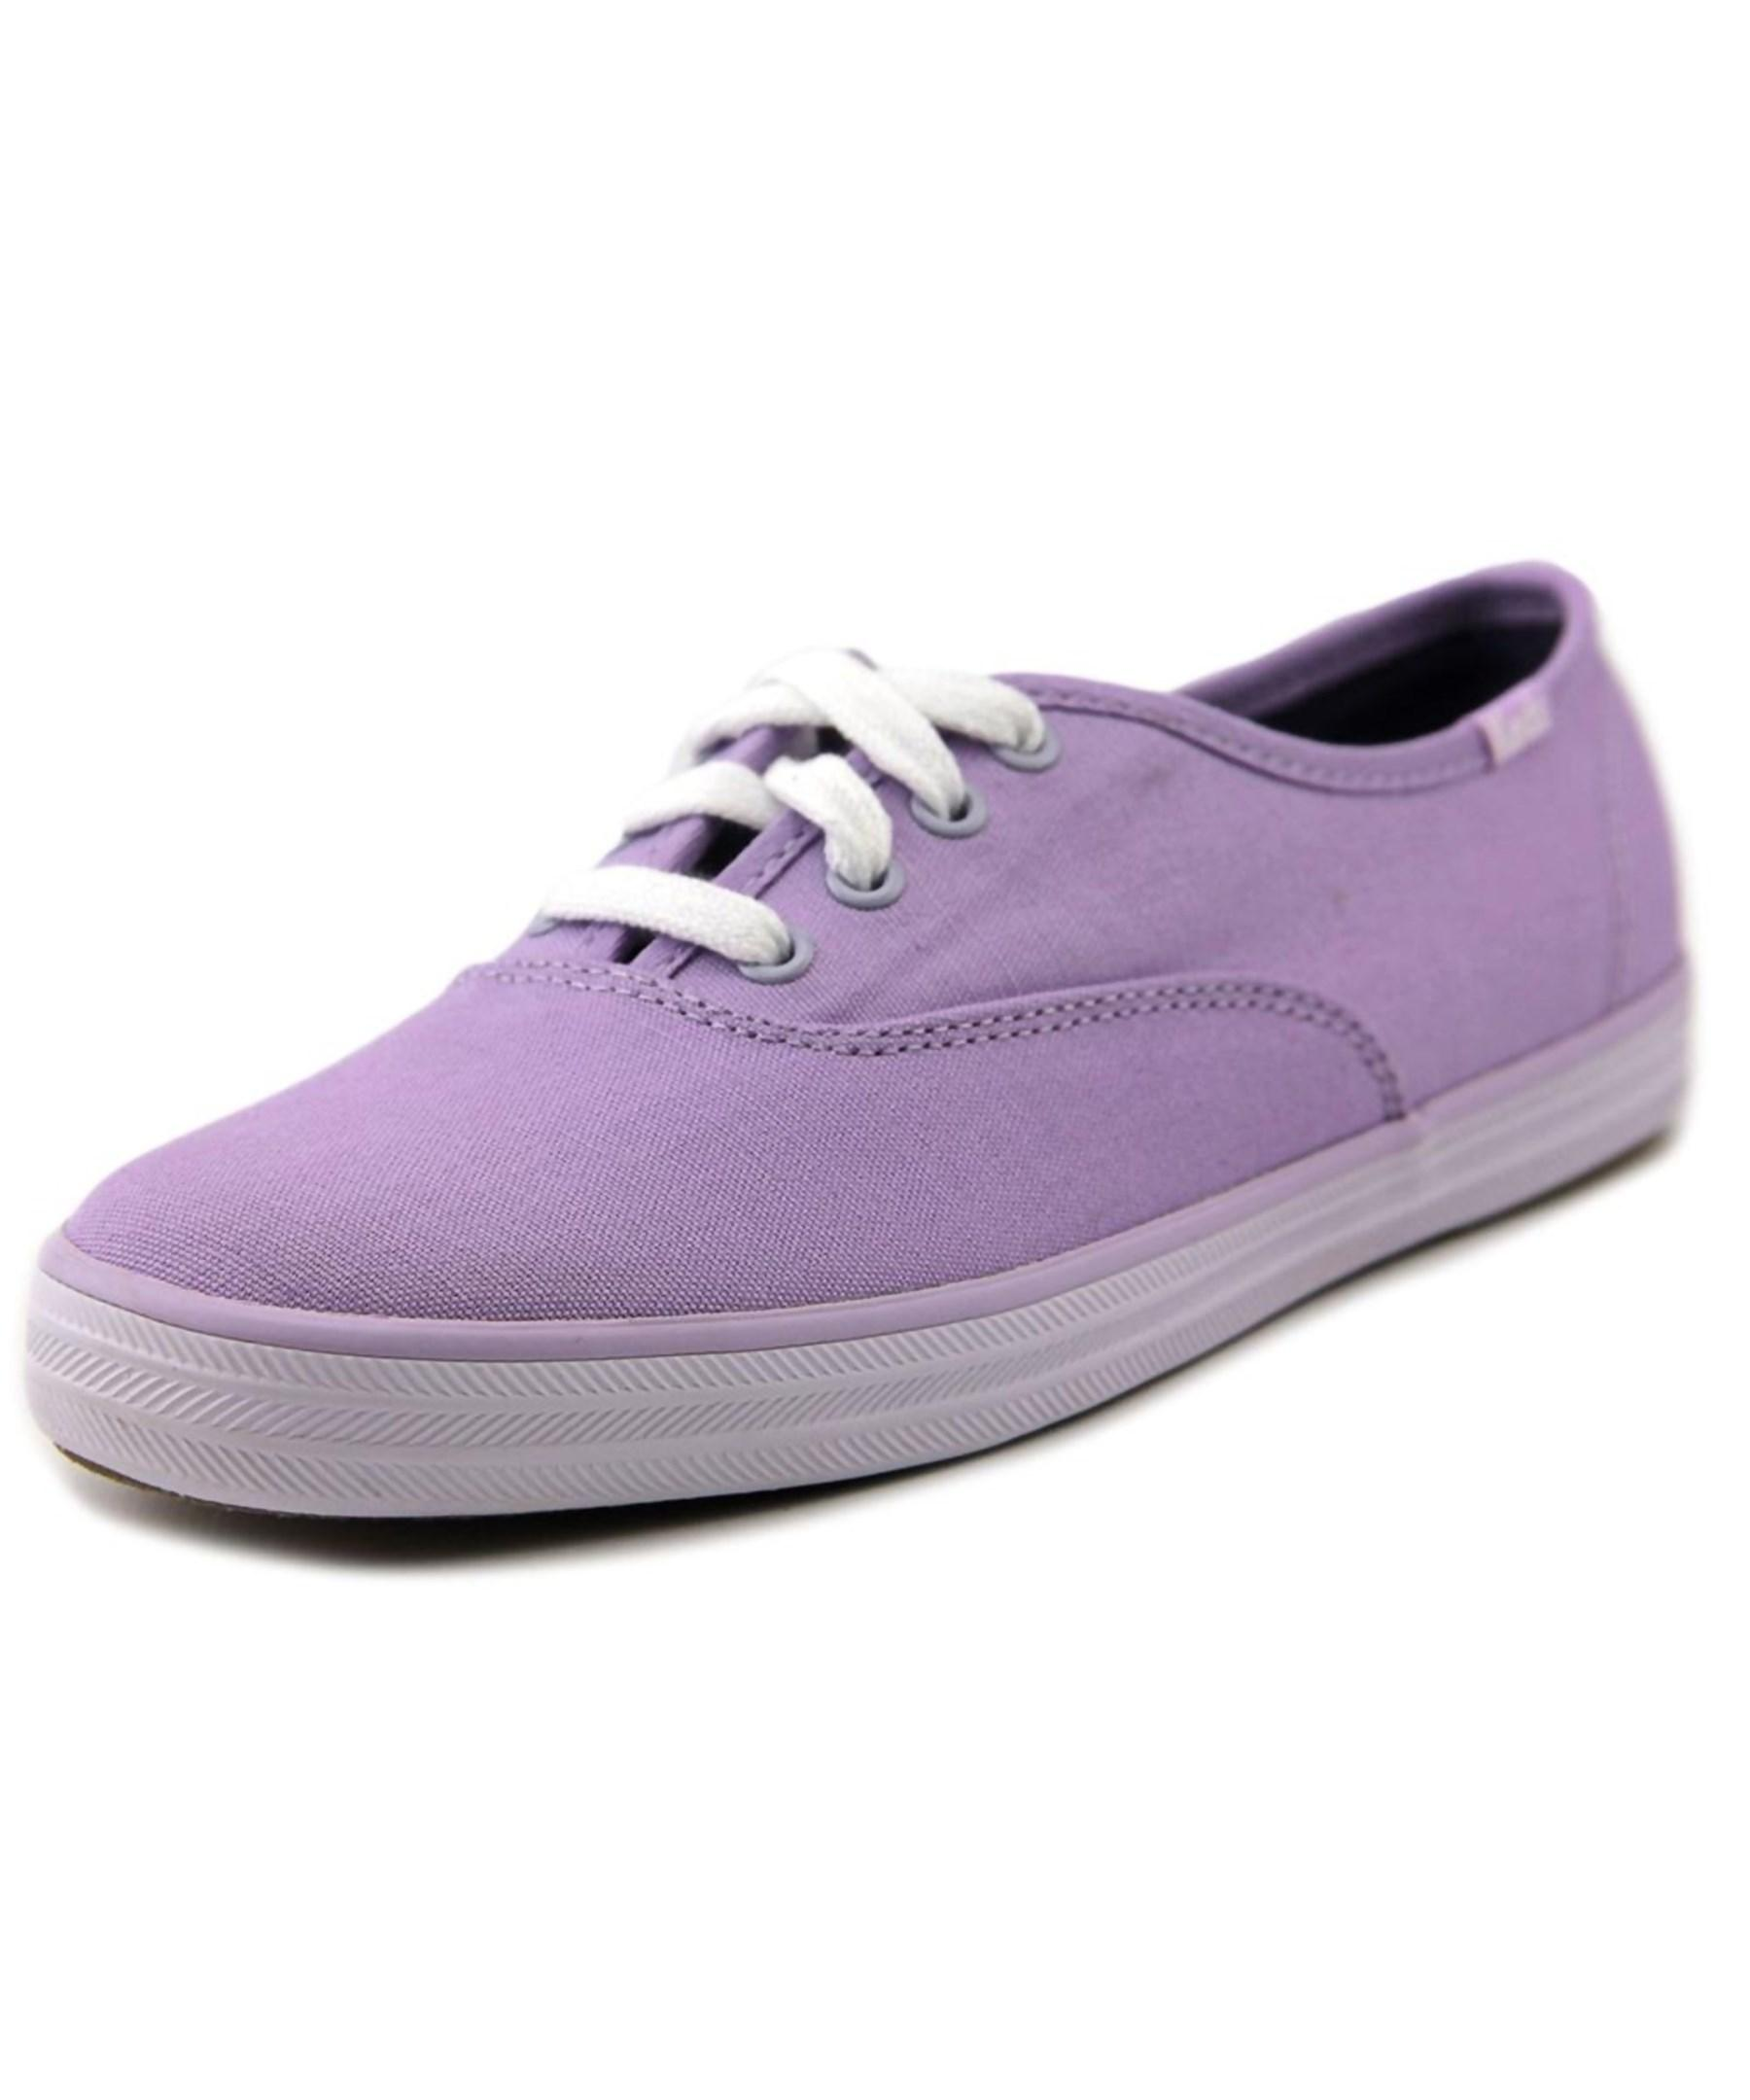 Where To Buy Keds Shoes